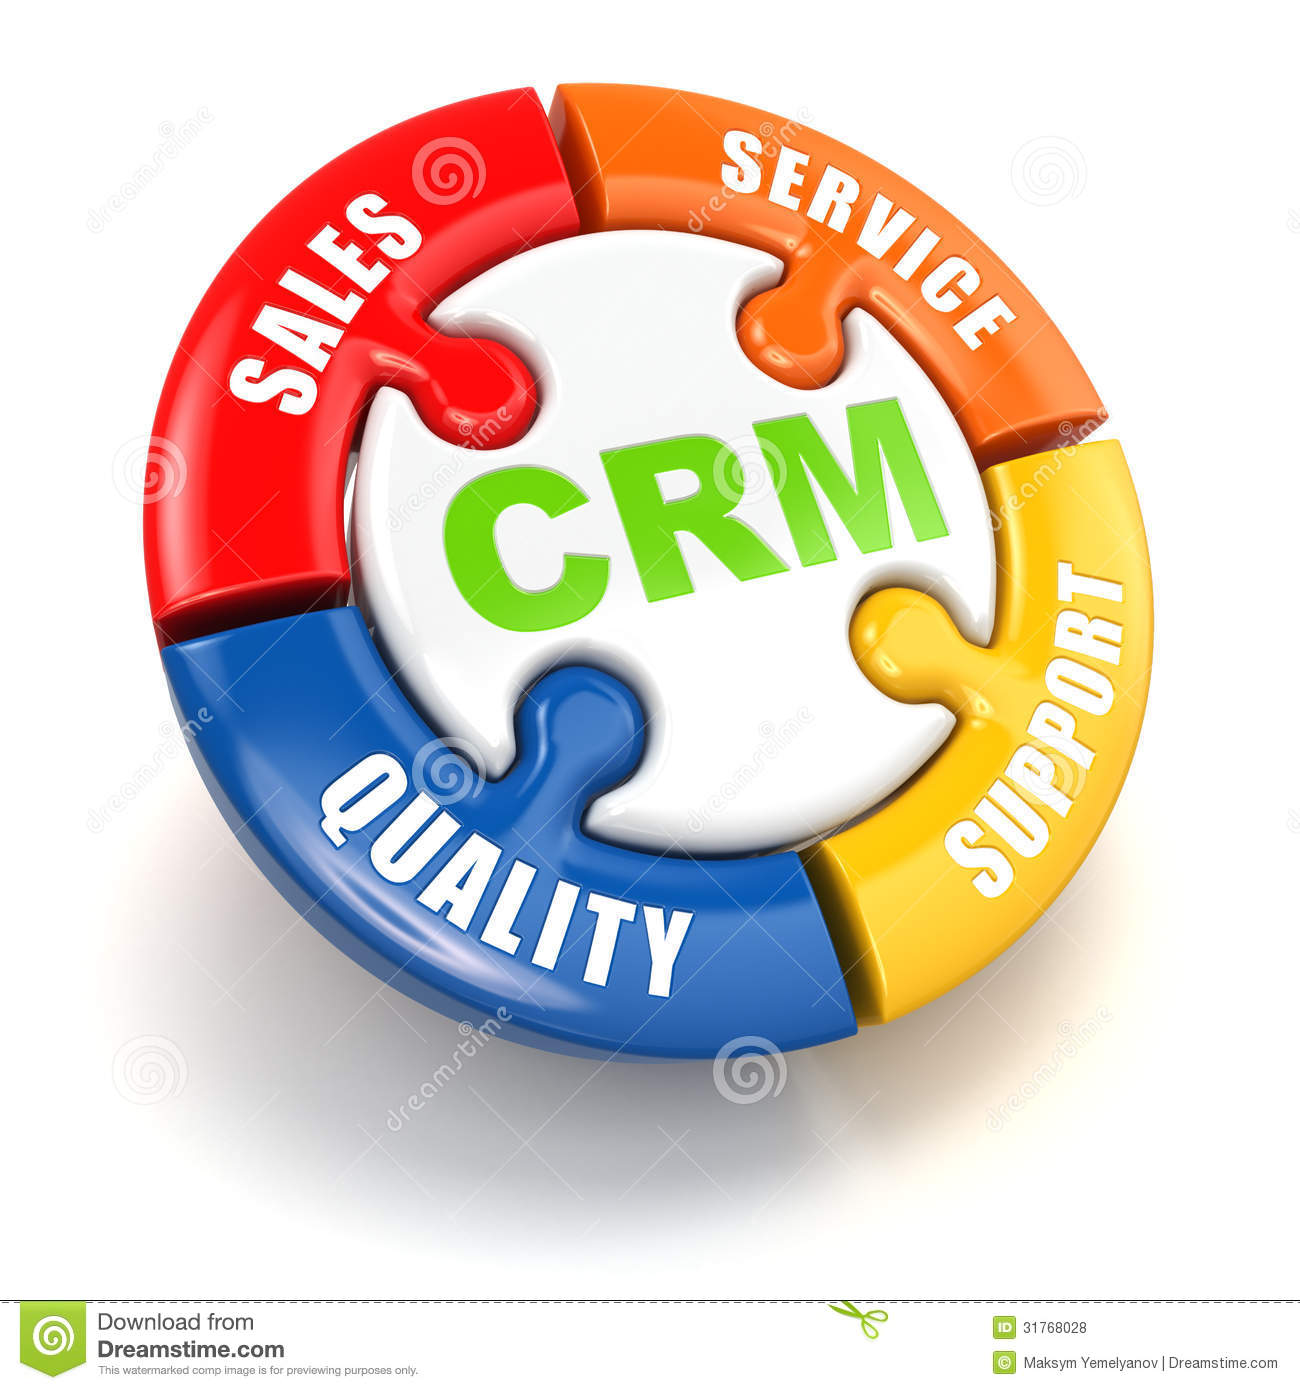 what is customer relation management Customer relationship management (crm) systems help you better understand your customers' needs and how to meet those needs while enhancing your bottom line crm systems link up information about customers from a variety of sources, including email, websites, physical stores, call centers, mobile.